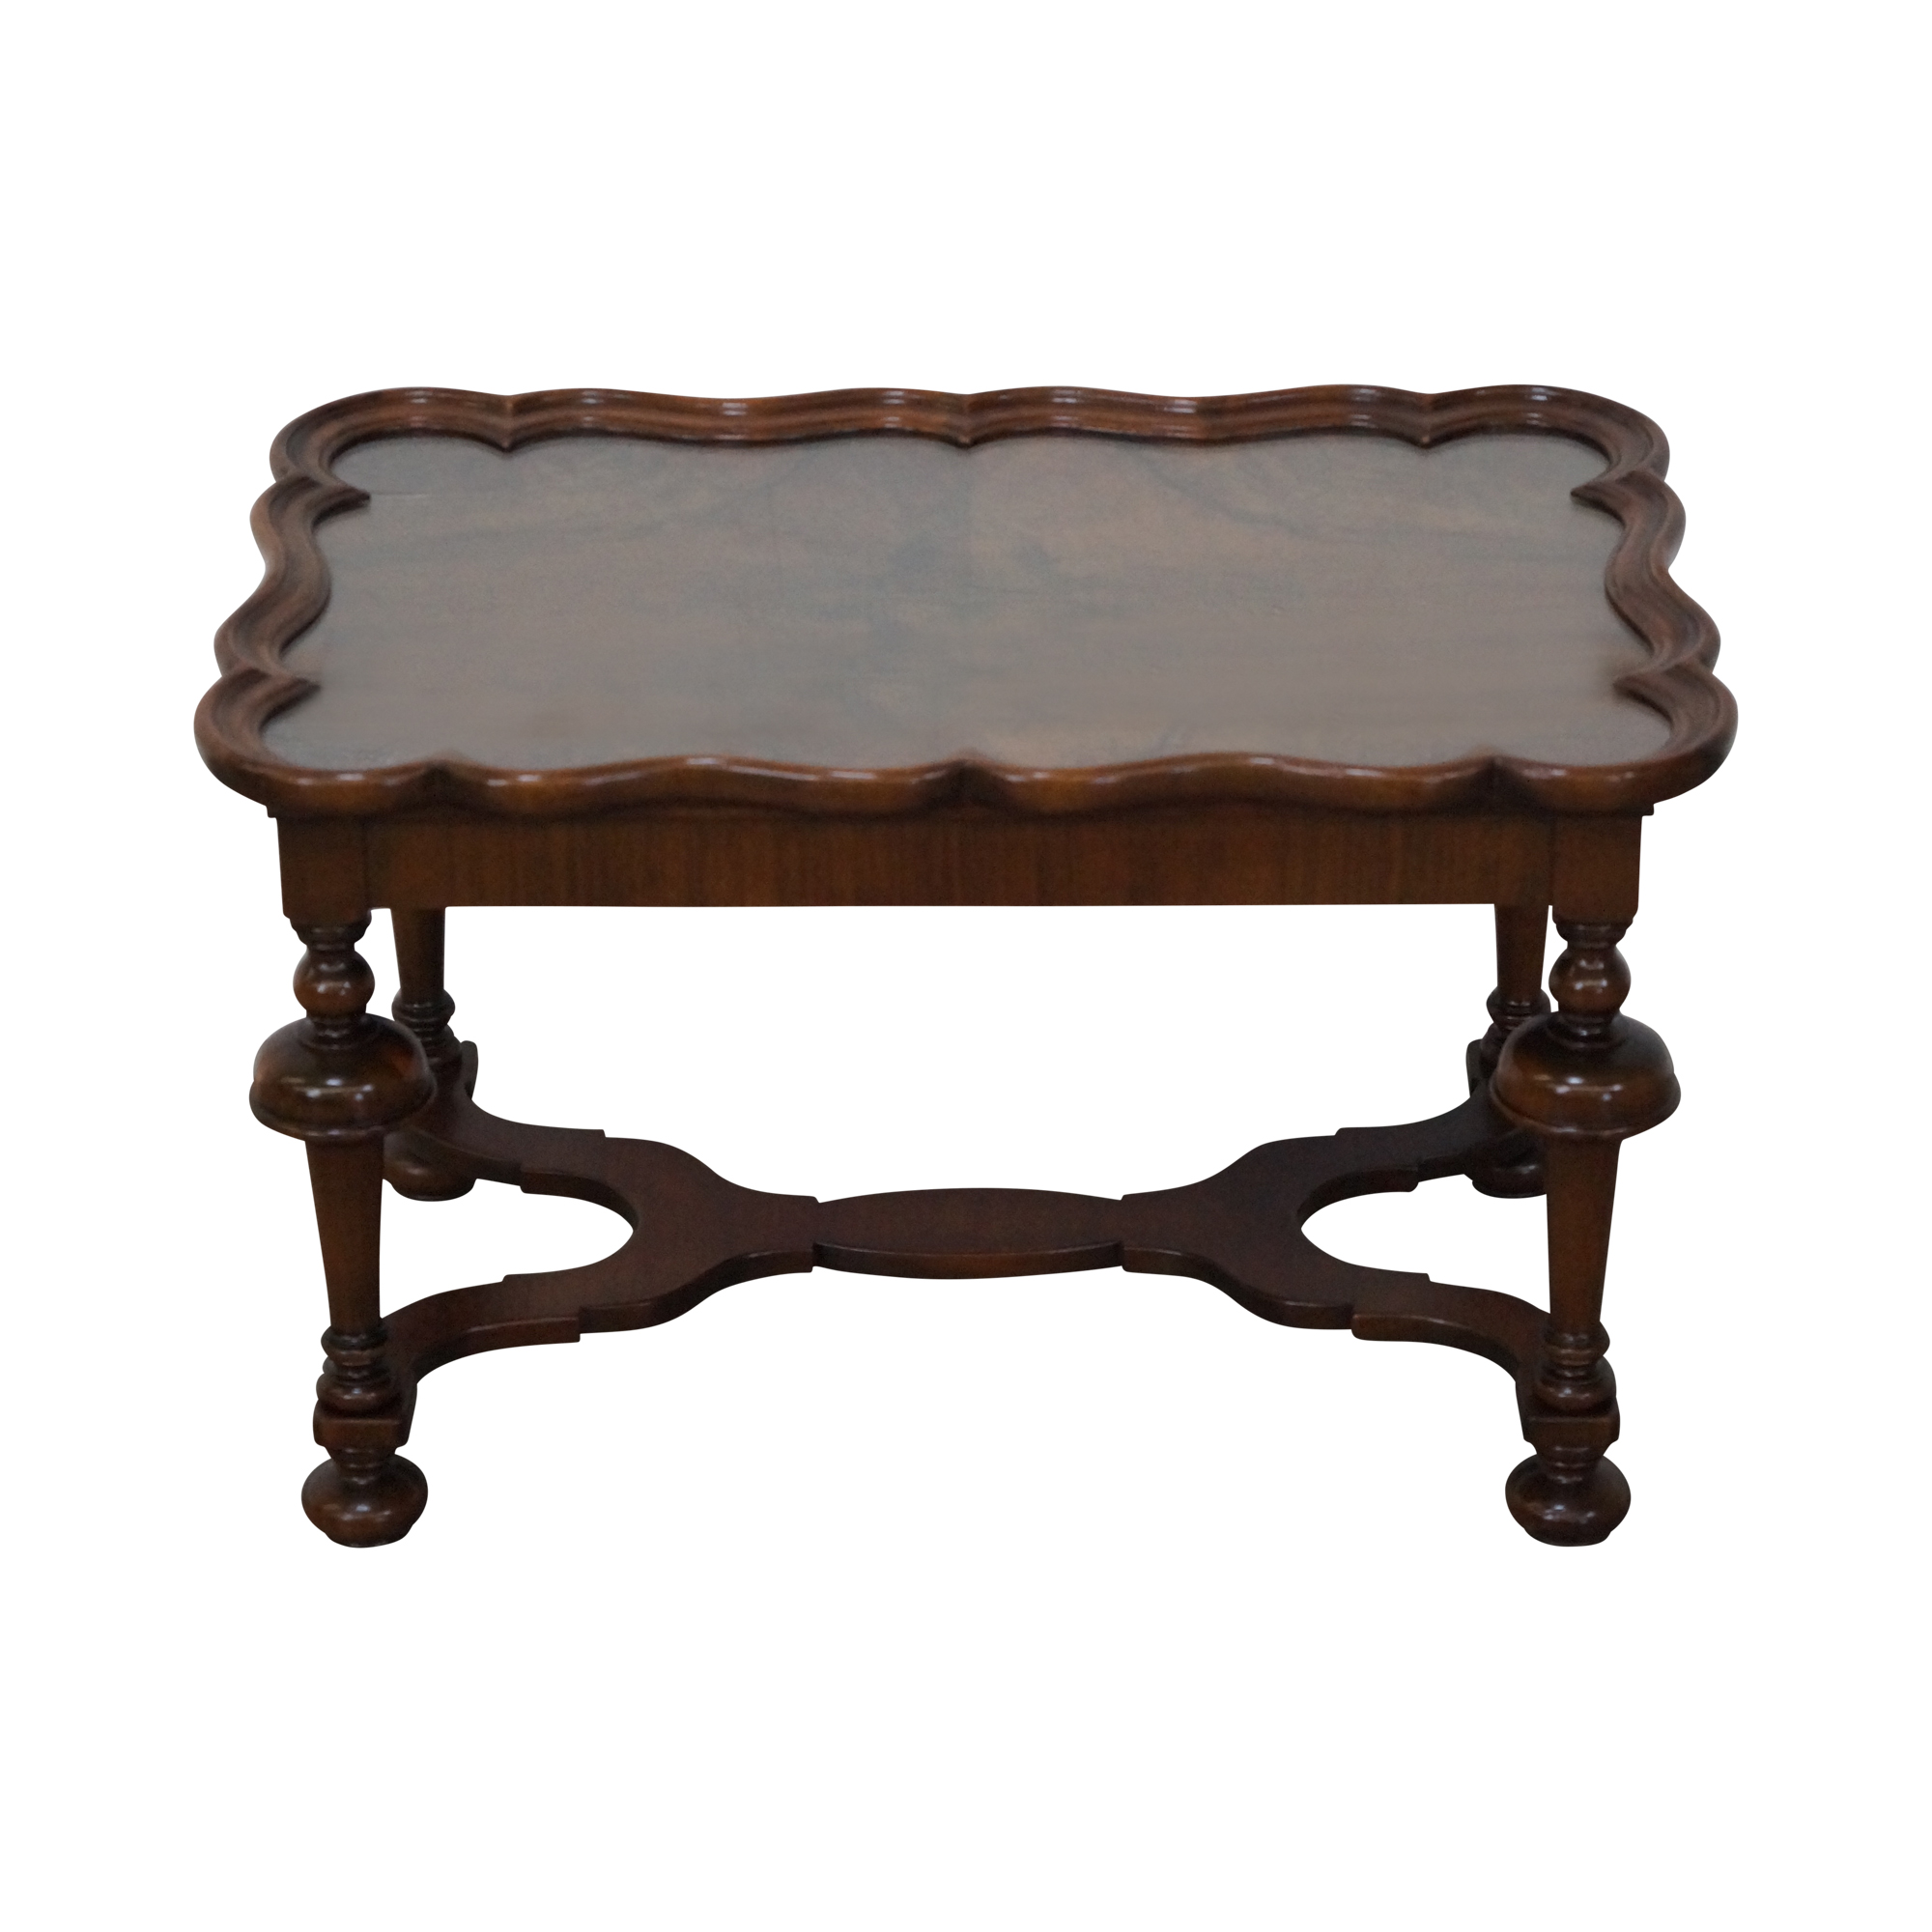 1930s antique burl walnut tray top coffee table chairish